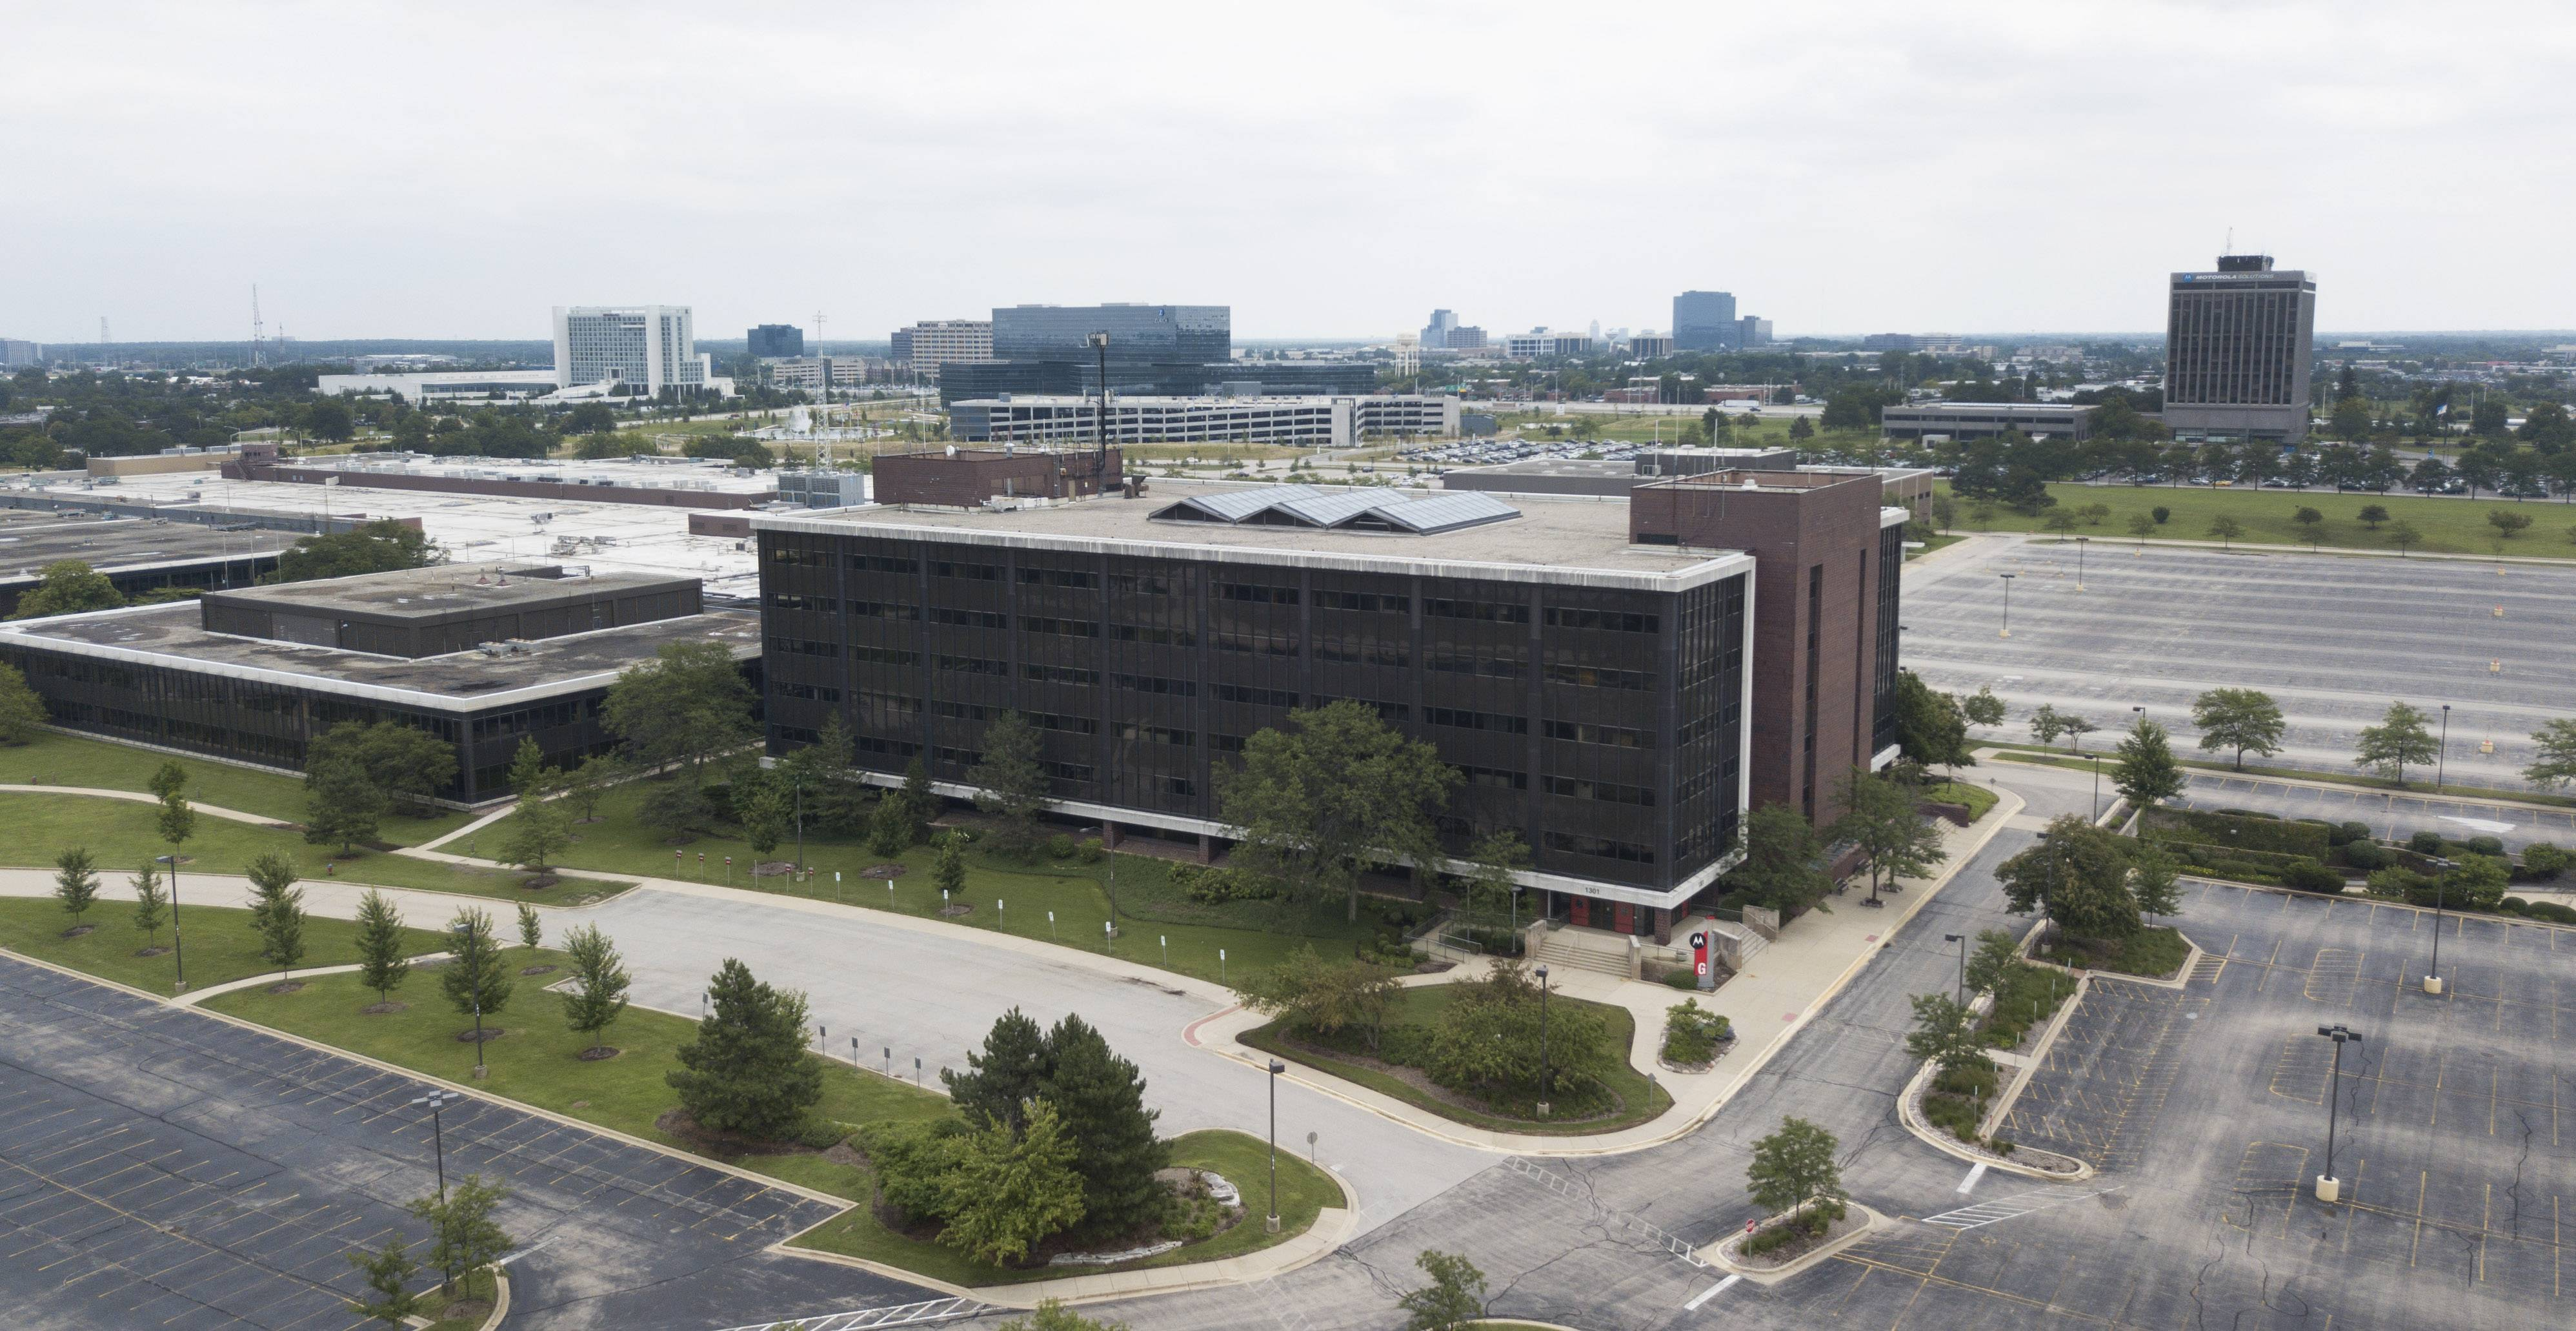 The Motorola Solutions property along Algonquin Road in Schaumburg is among 10 sites Illinois is pitching for Amazon's new headquarters.